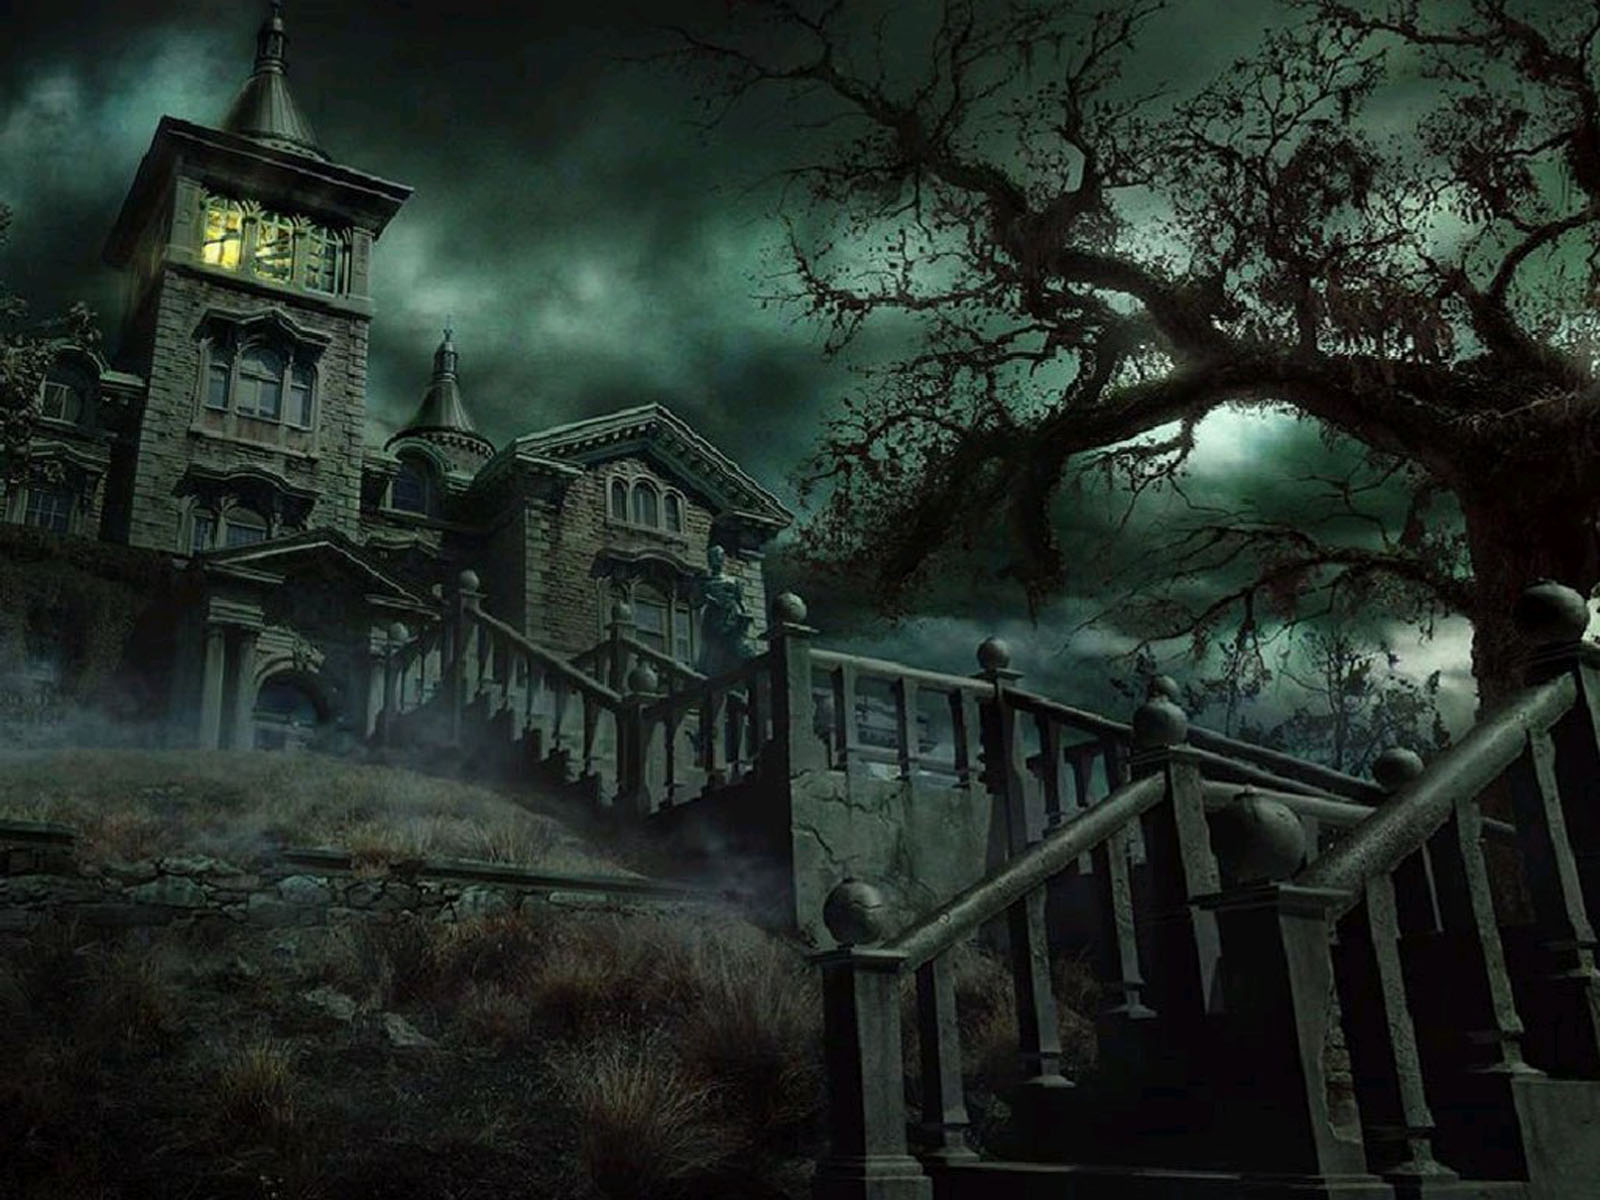 Scary Live Wallpapers For PC 1600x1200